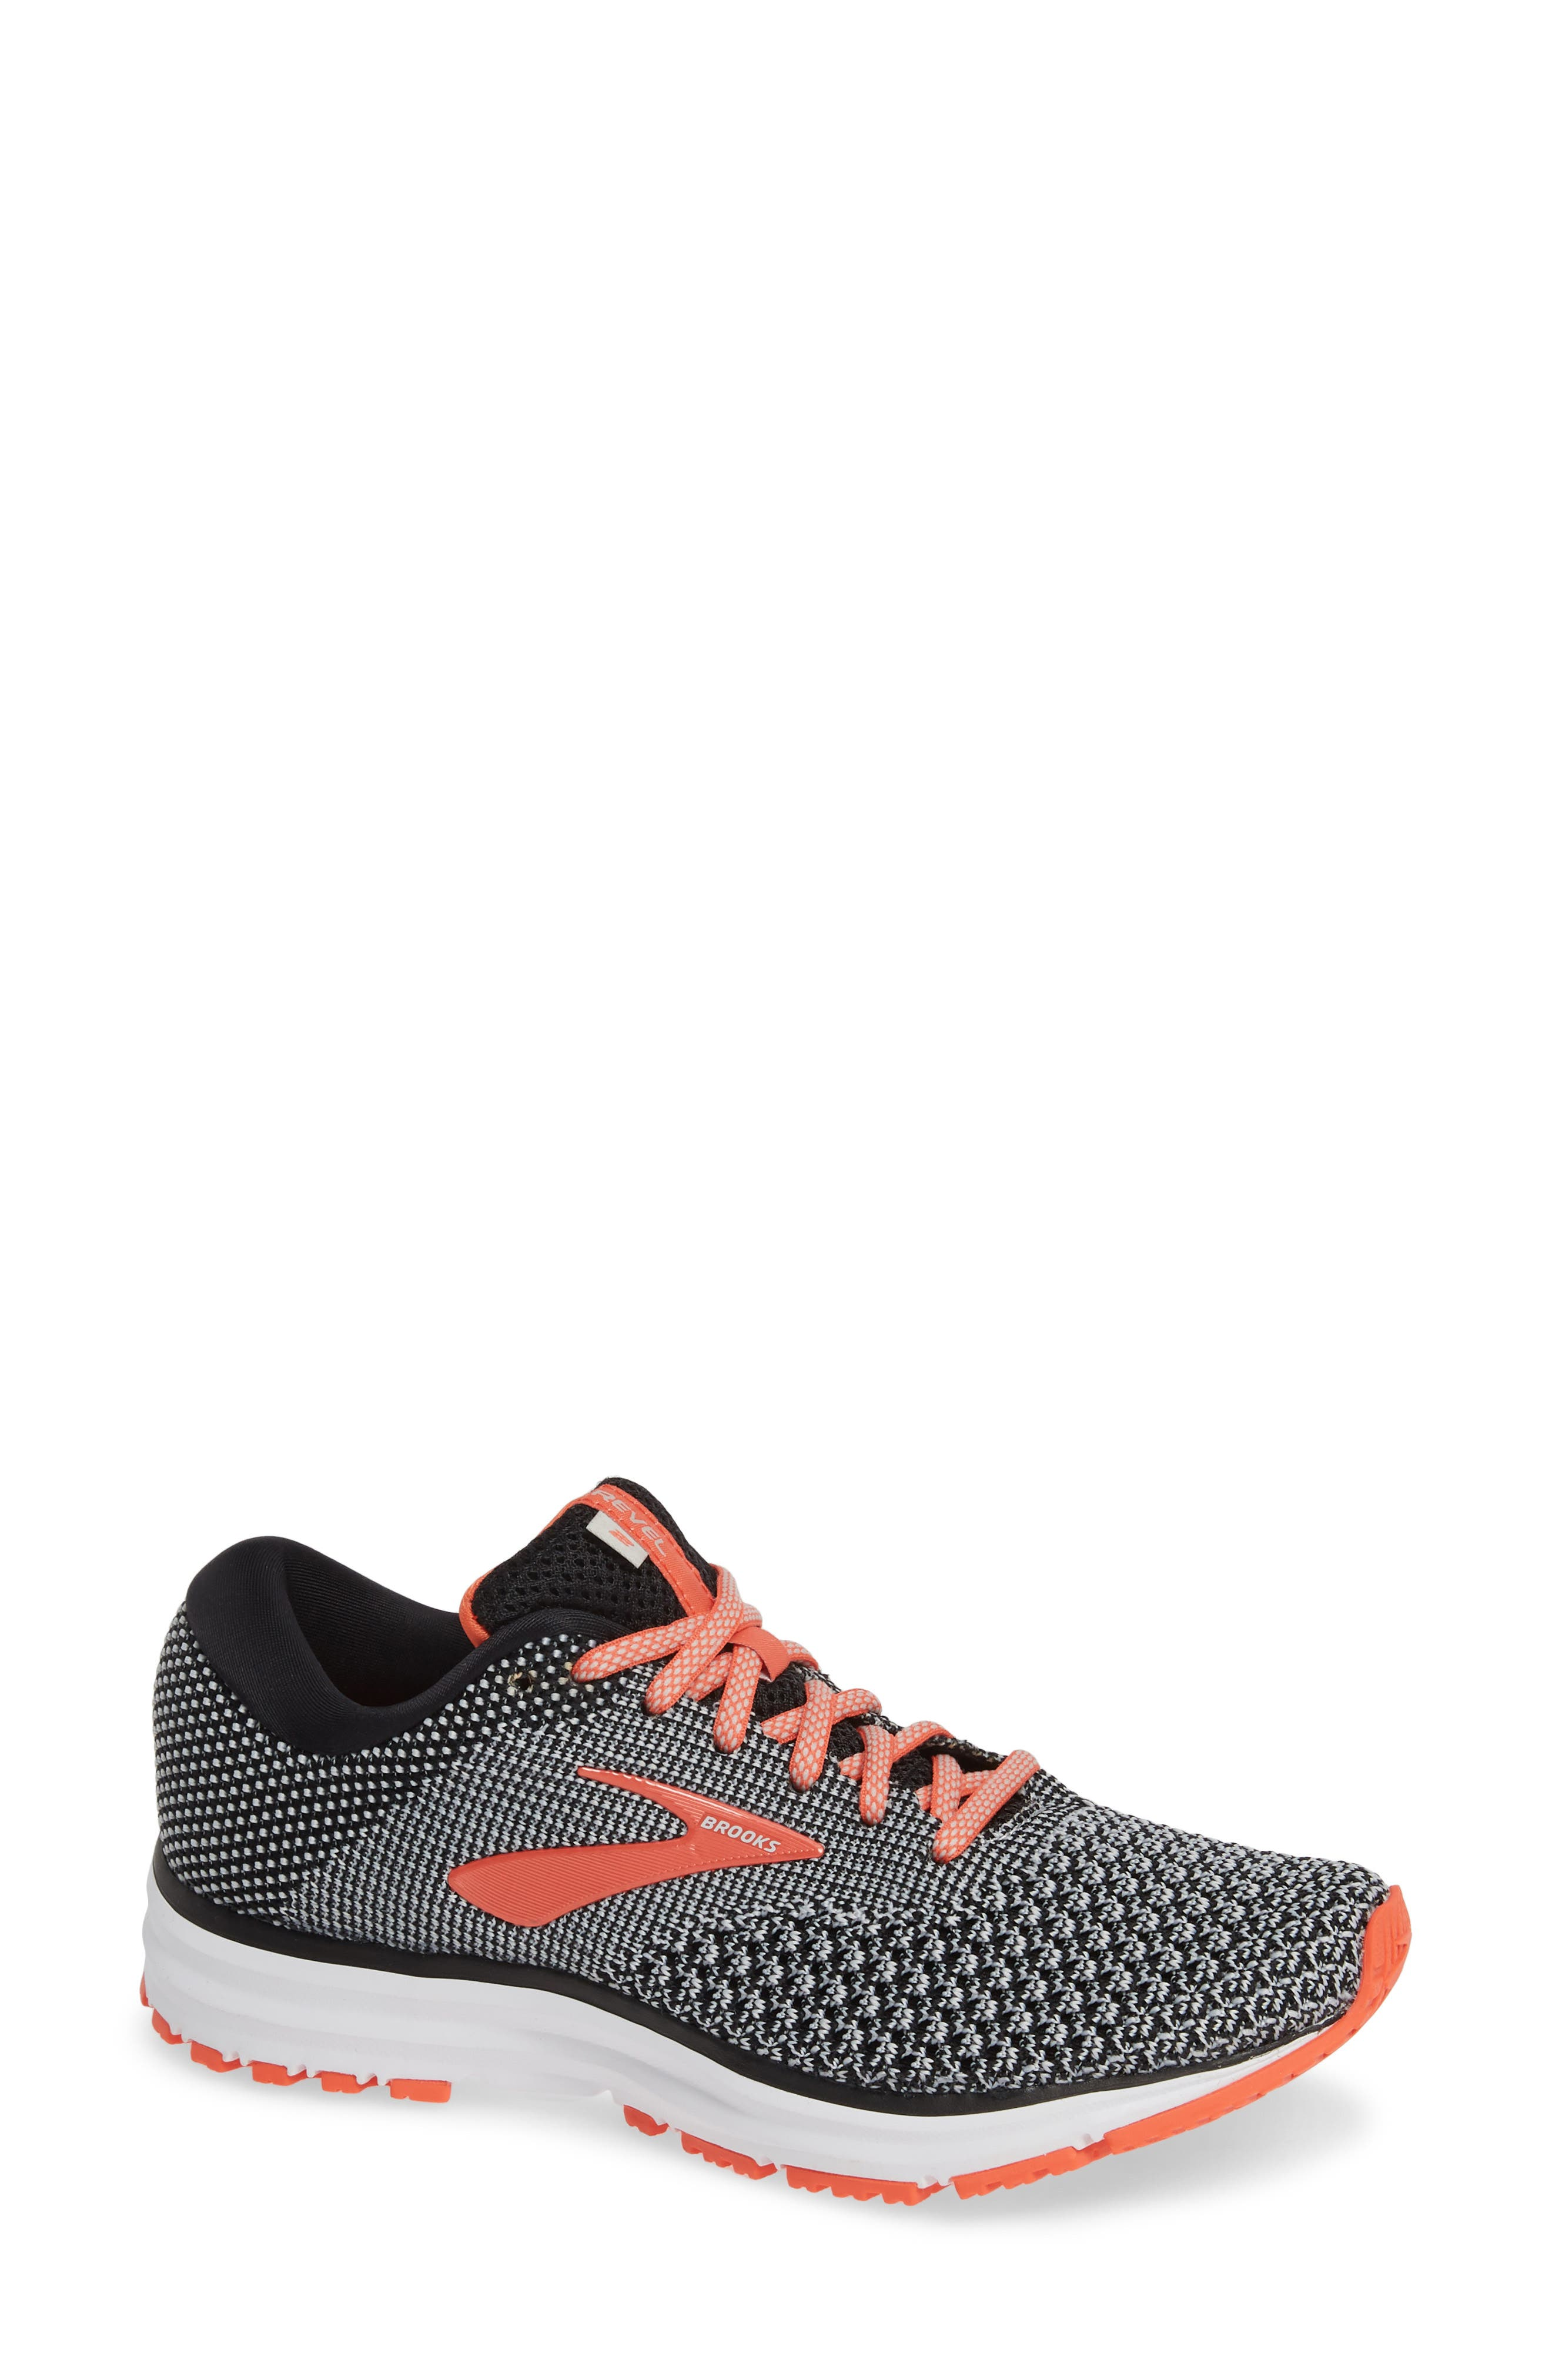 Revel 2 Running Shoe,                             Main thumbnail 1, color,                             BLACK/ LIGHT GREY/ CORAL